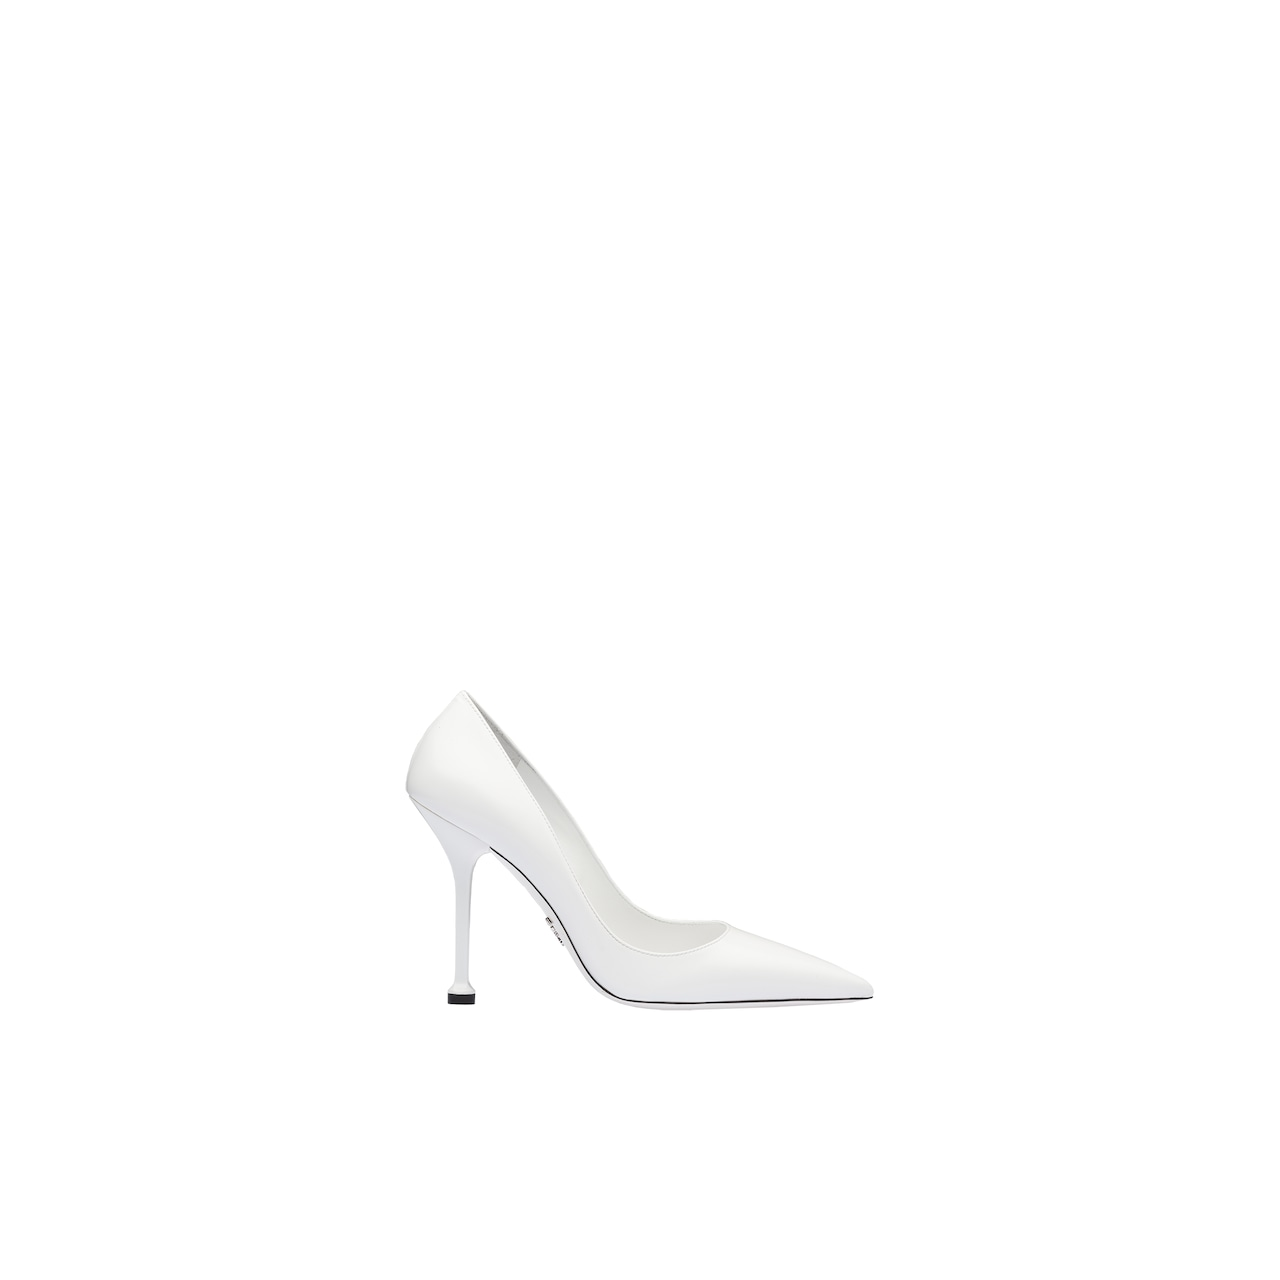 Prada Brushed leather pumps 4